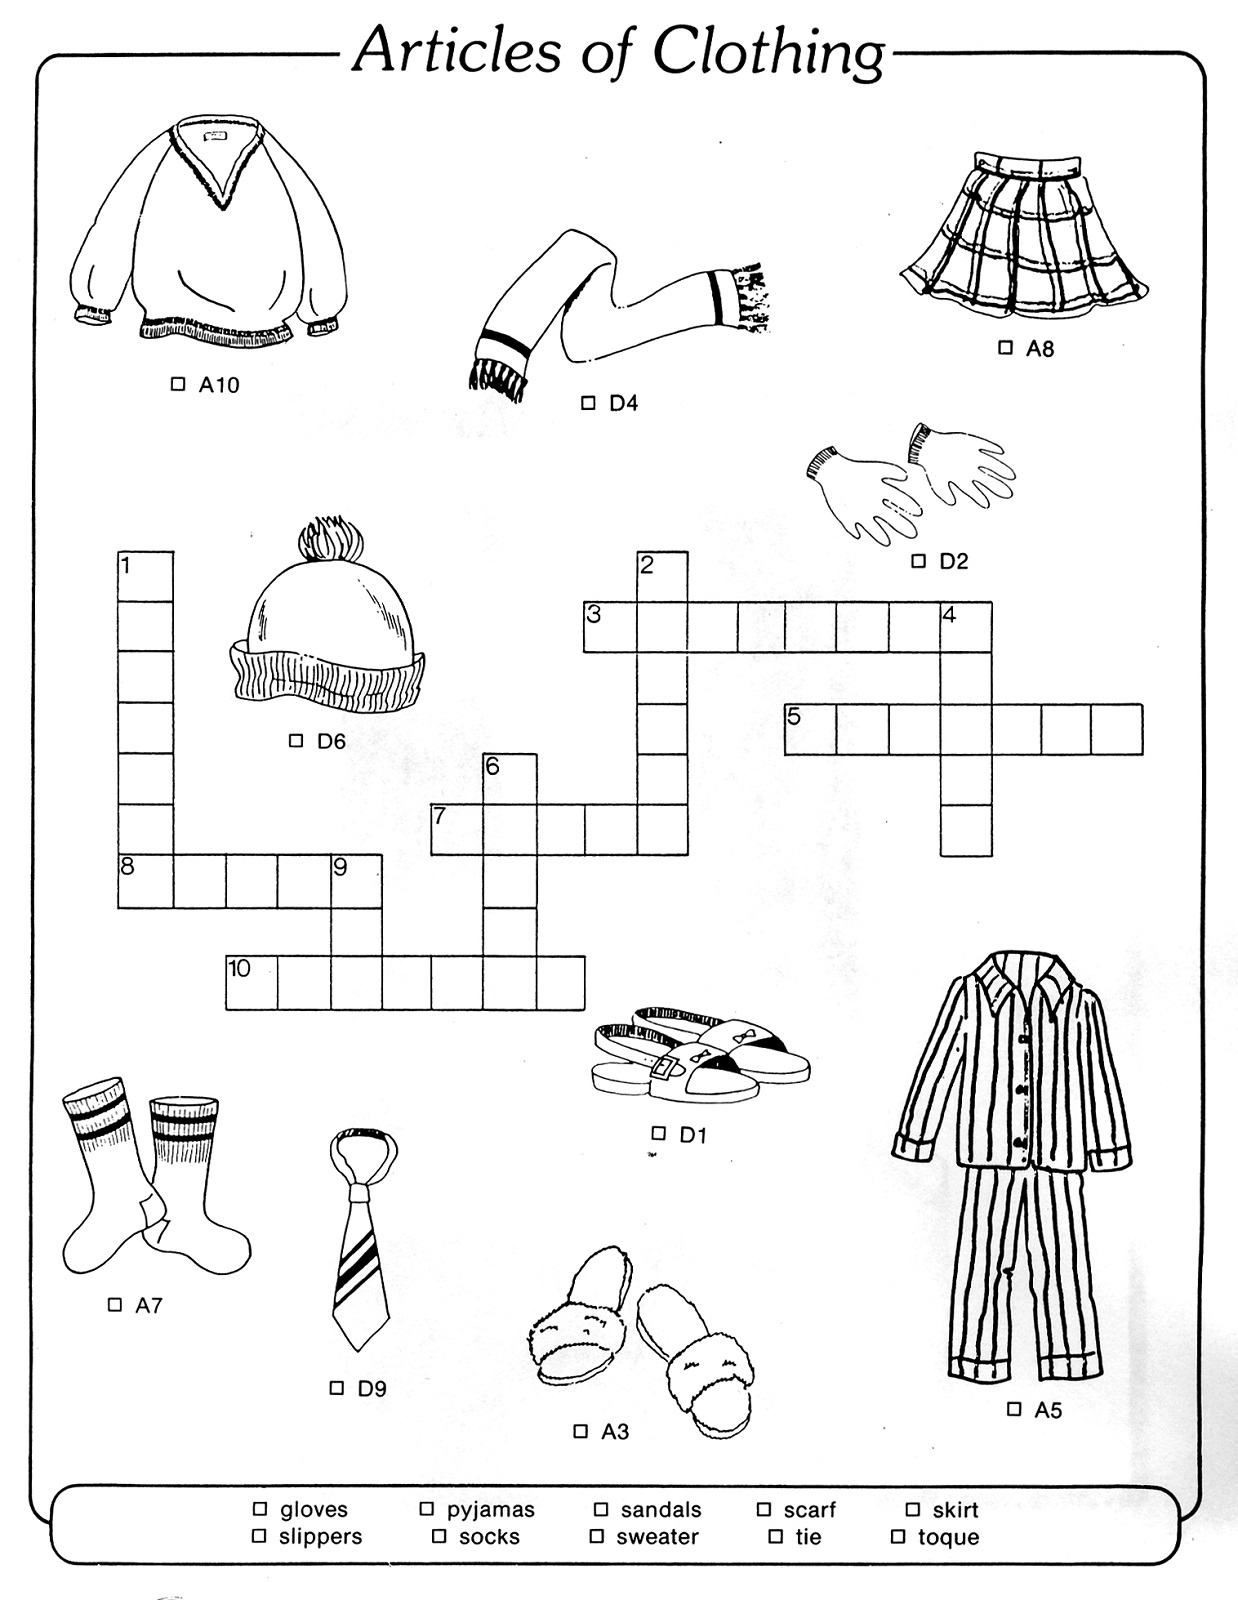 easy-crossword-puzzles-for-kids-clothing